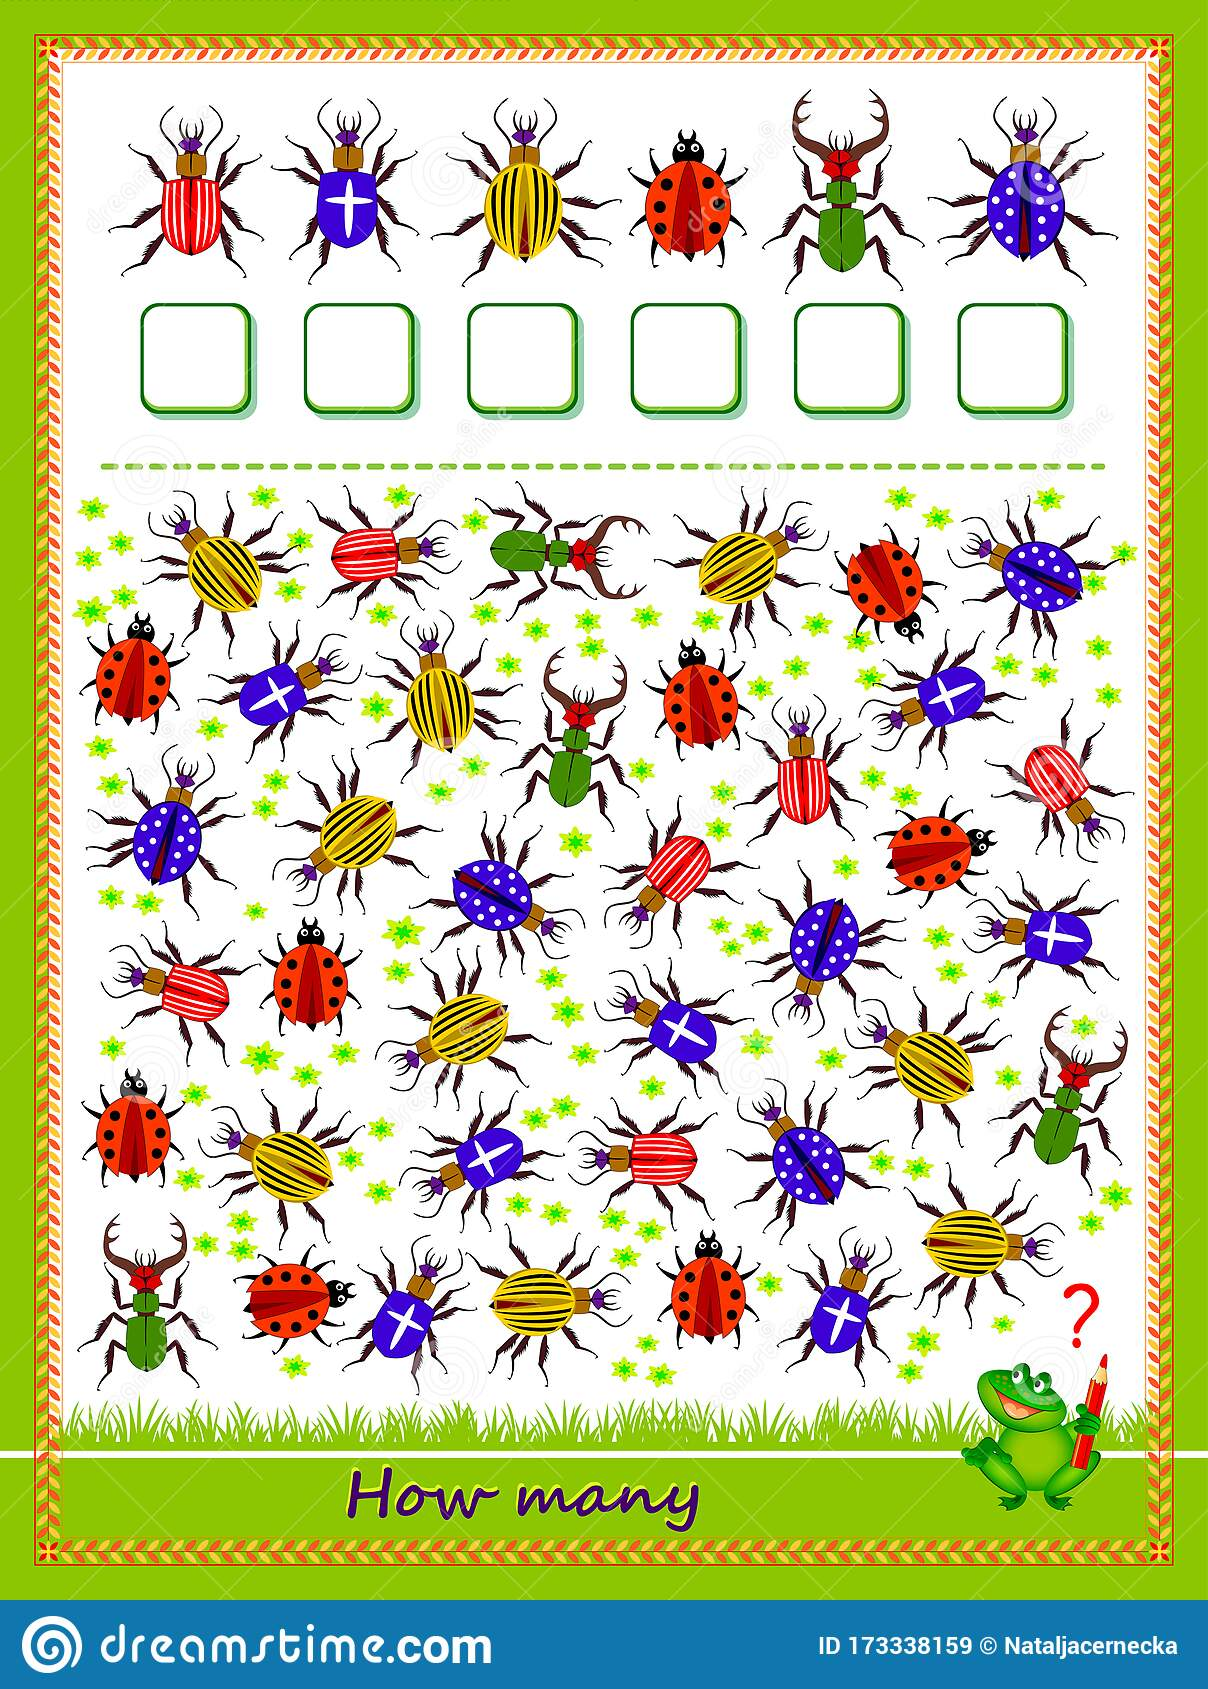 Math Education For Children Count Quantity Of Bugs And